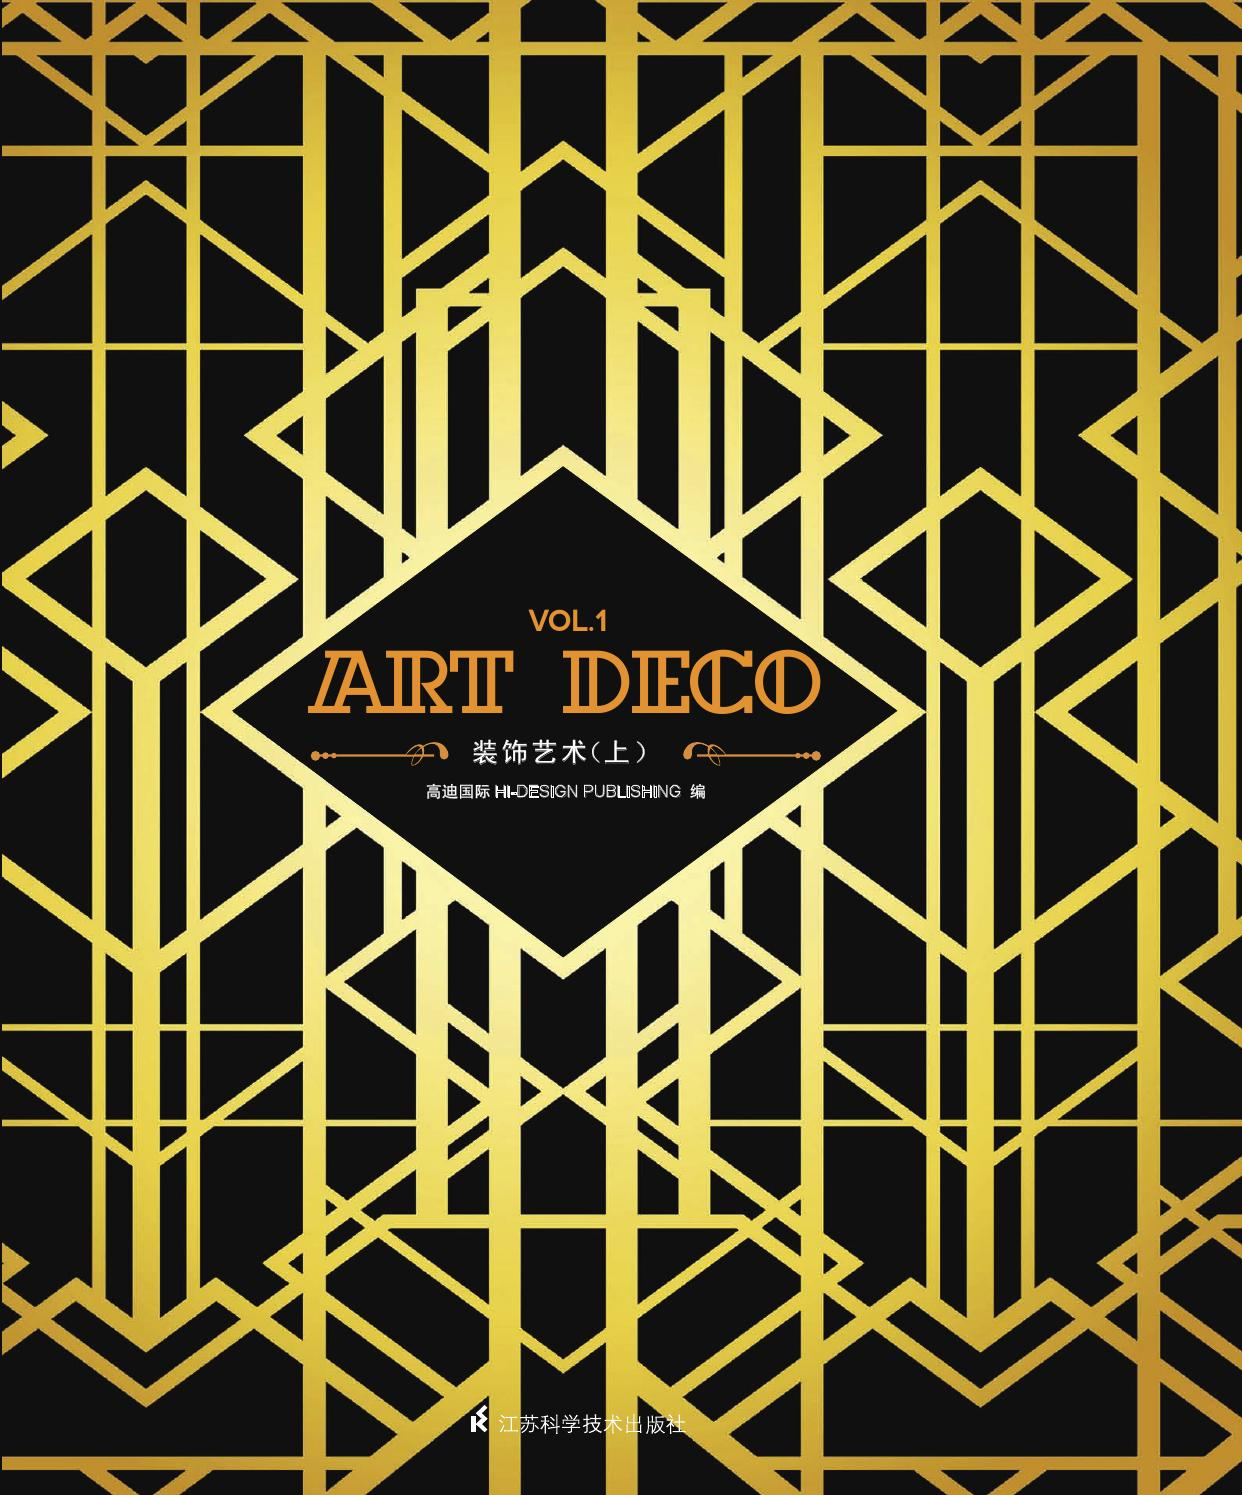 Issuu art deco vol 1 by hi design international publishing hk co ltd - Deco vol ...